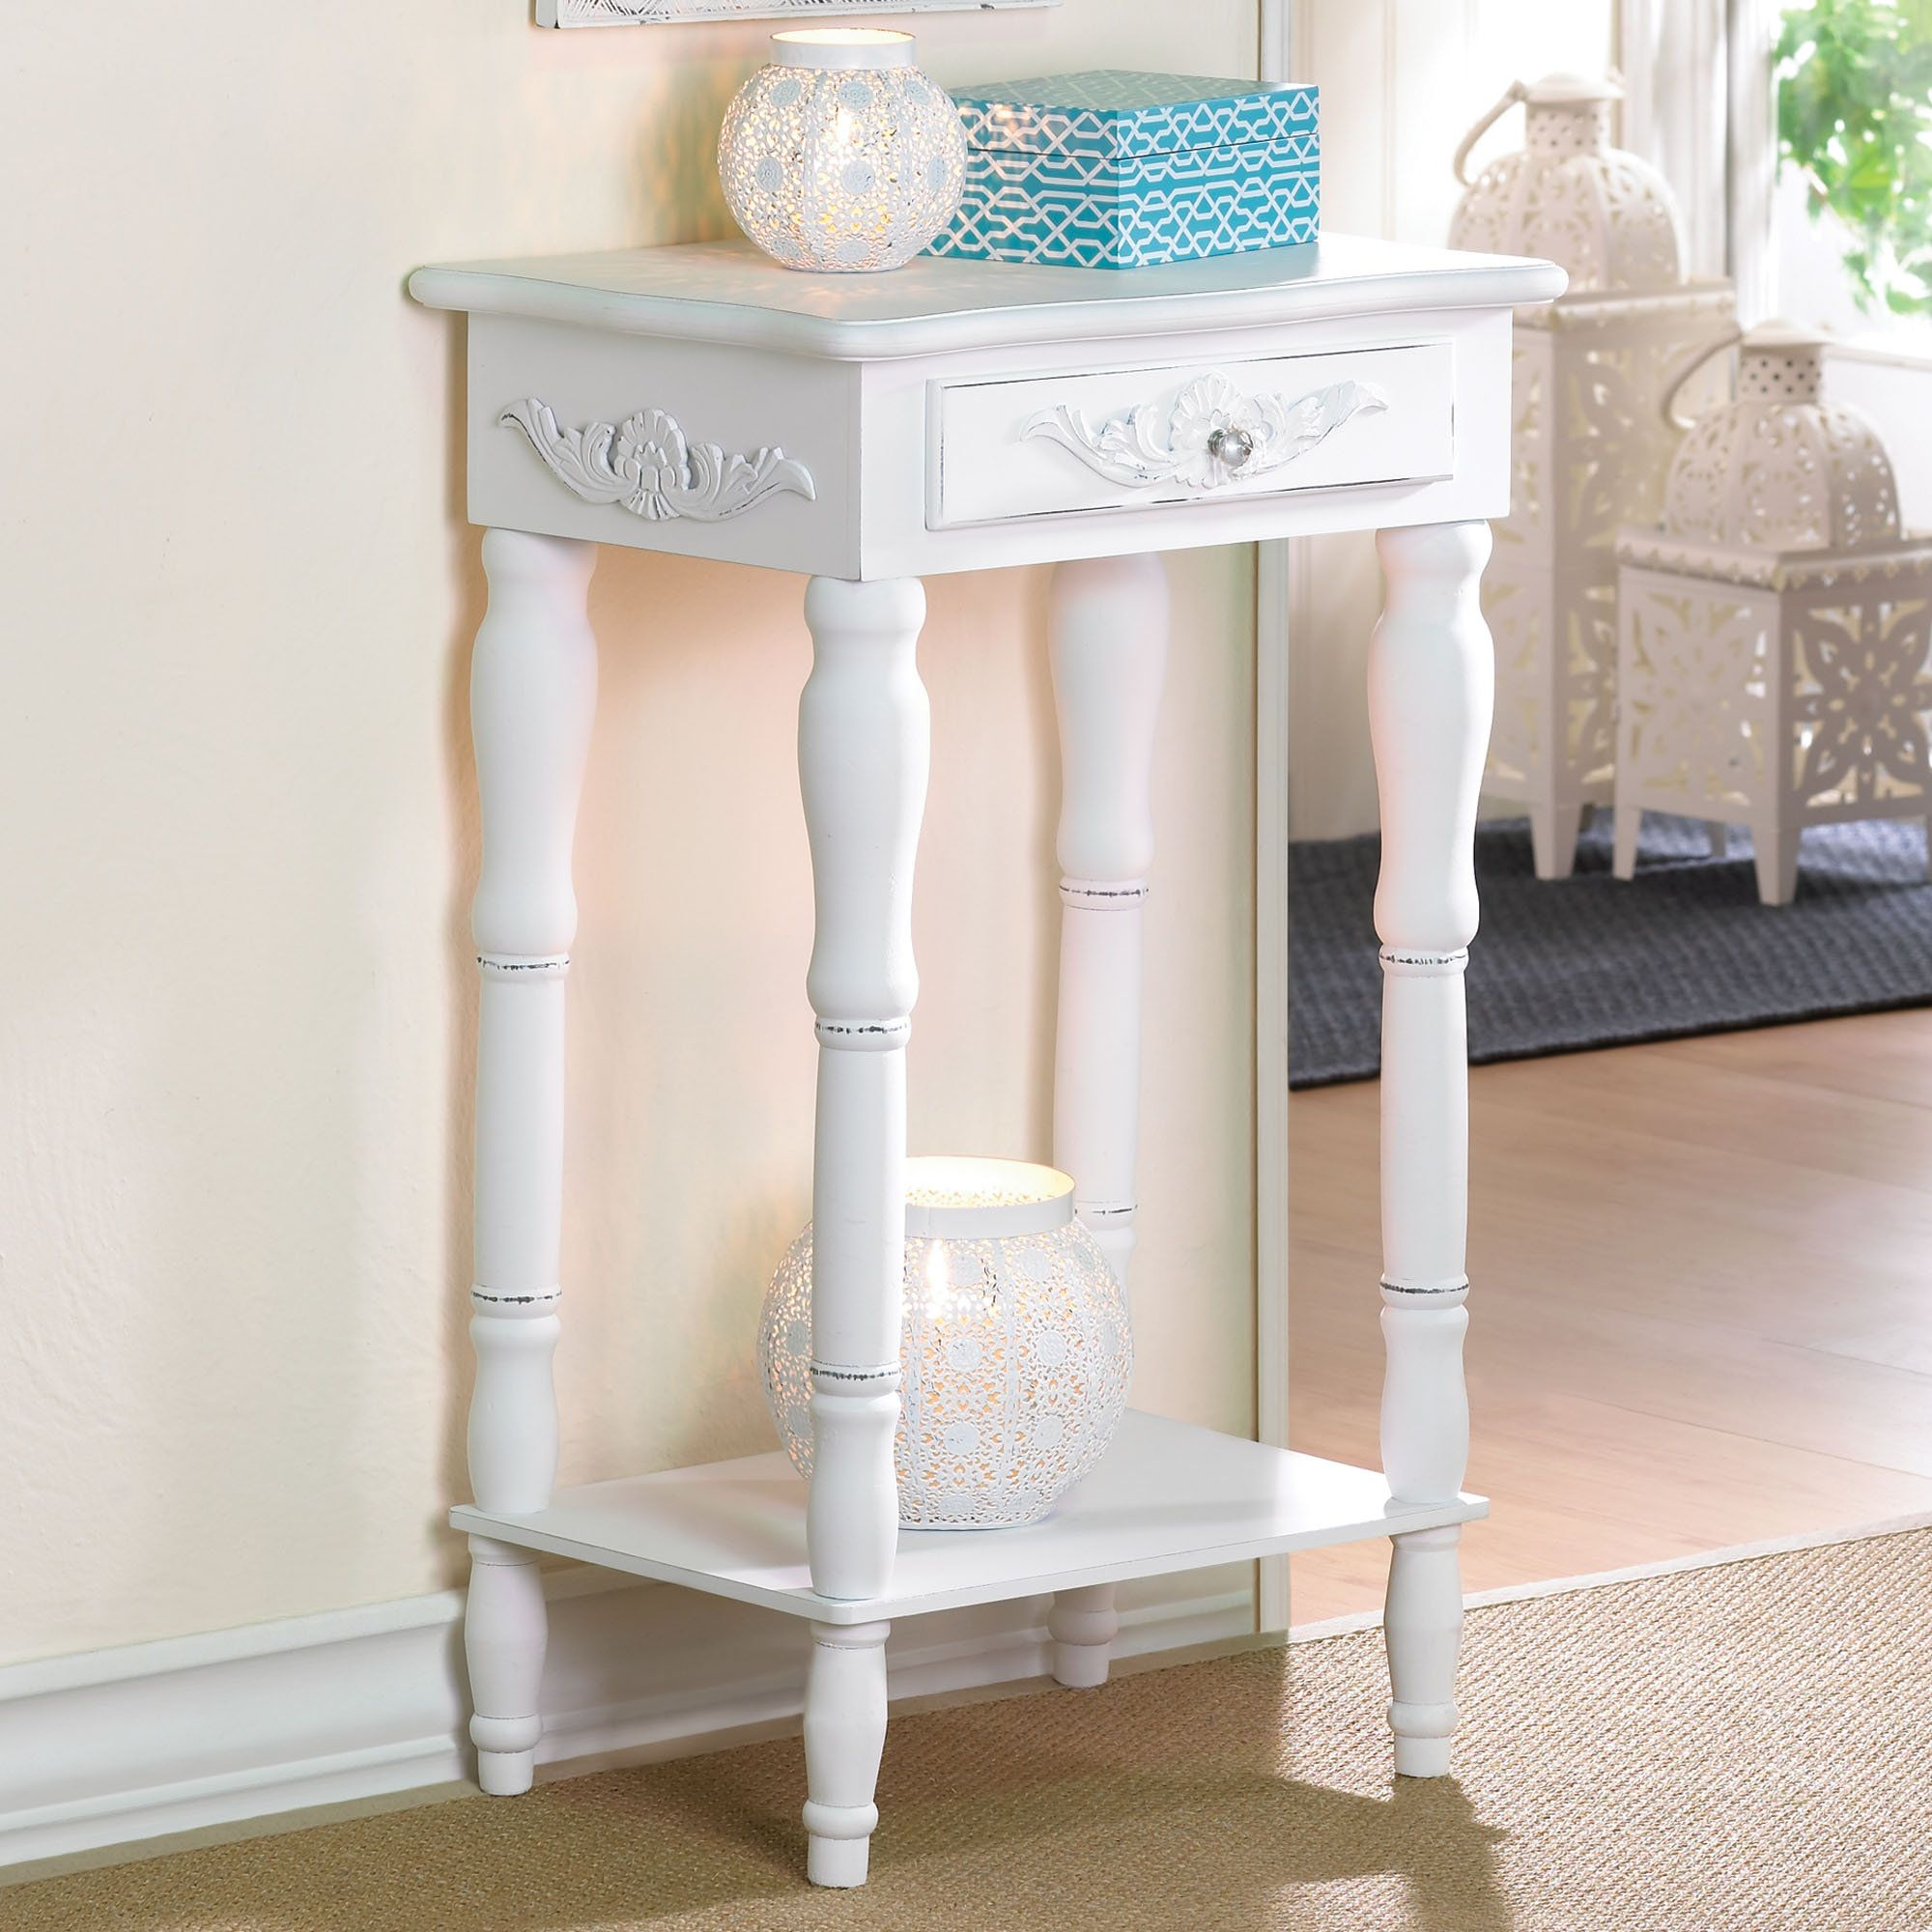 Cosenza Antique White Accent Table With Drawer Side Table Decor